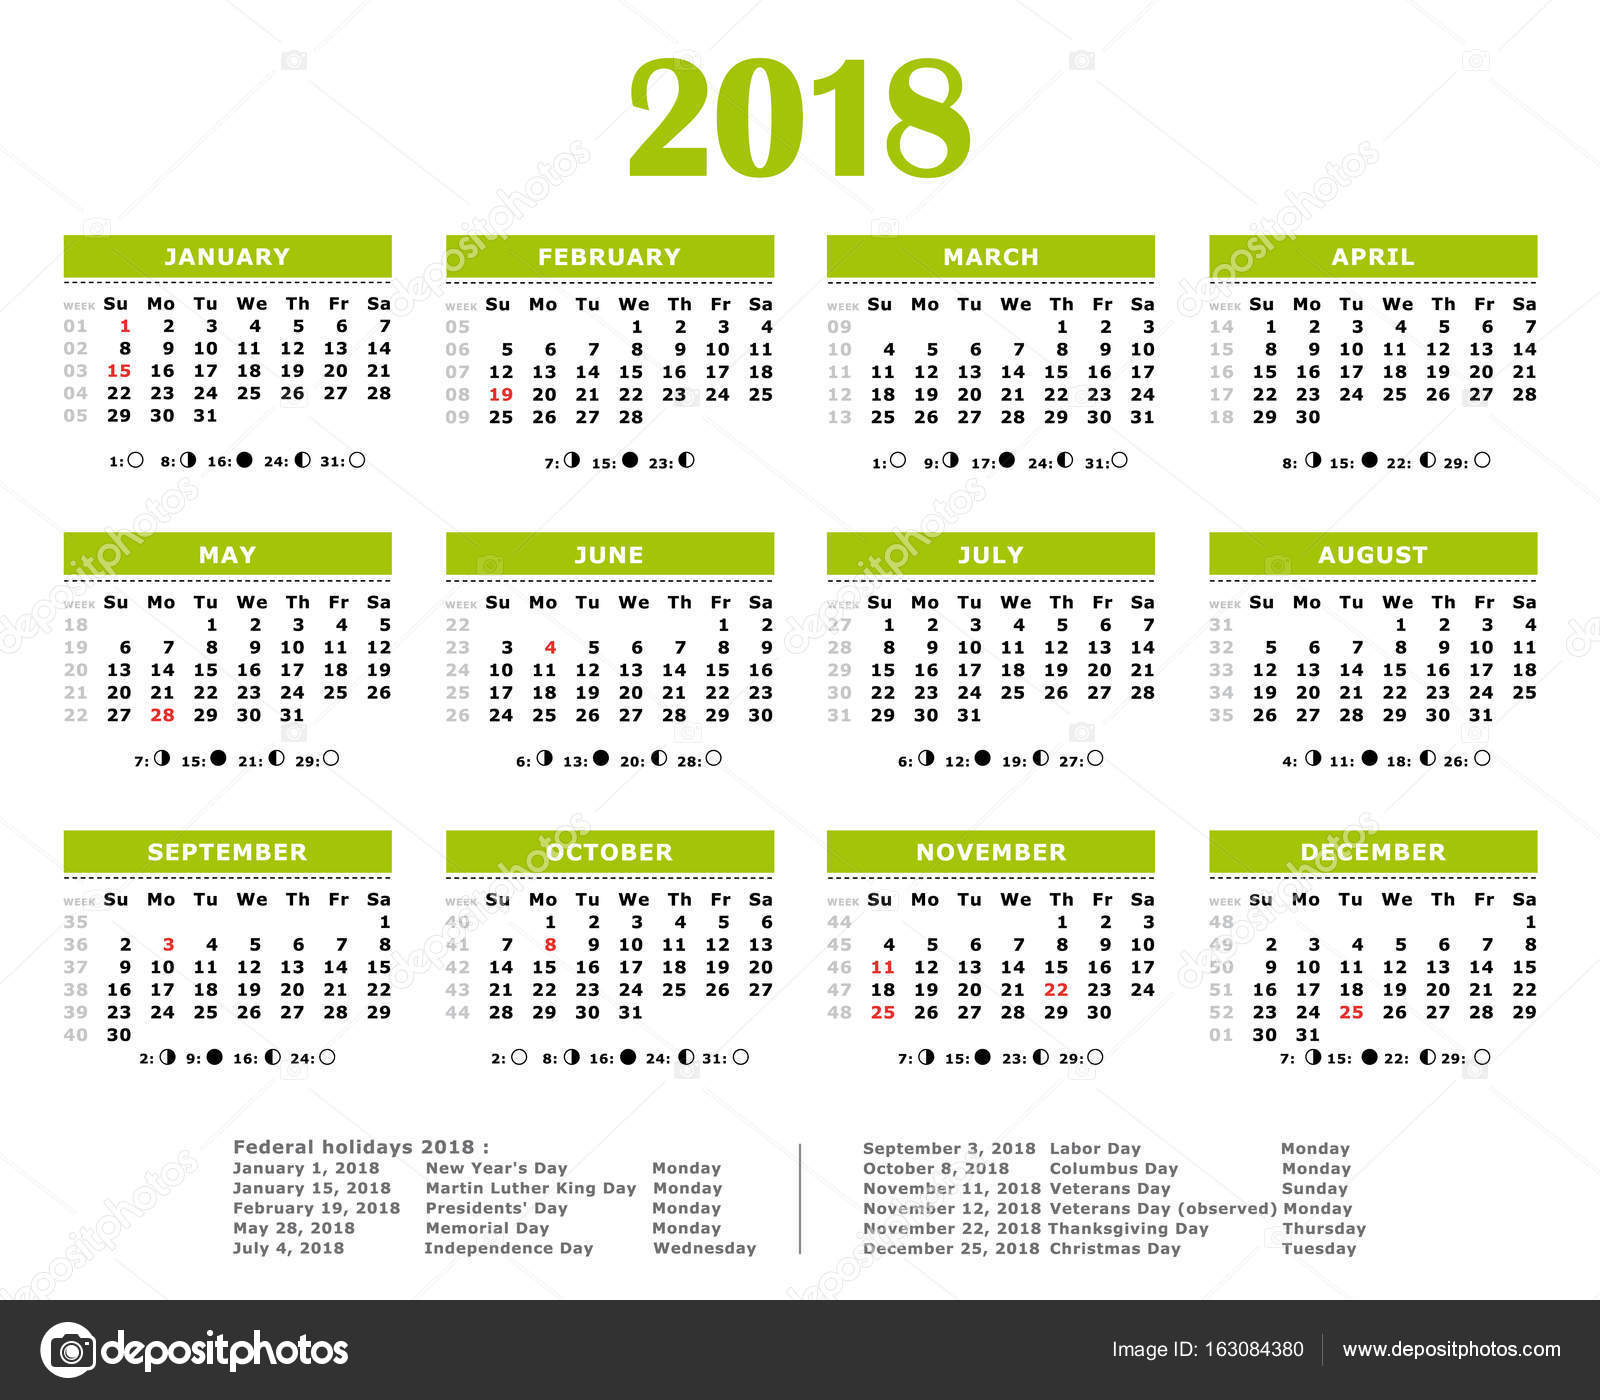 2018 green yearly calendar federal holidays moon and numbers of weeks stock